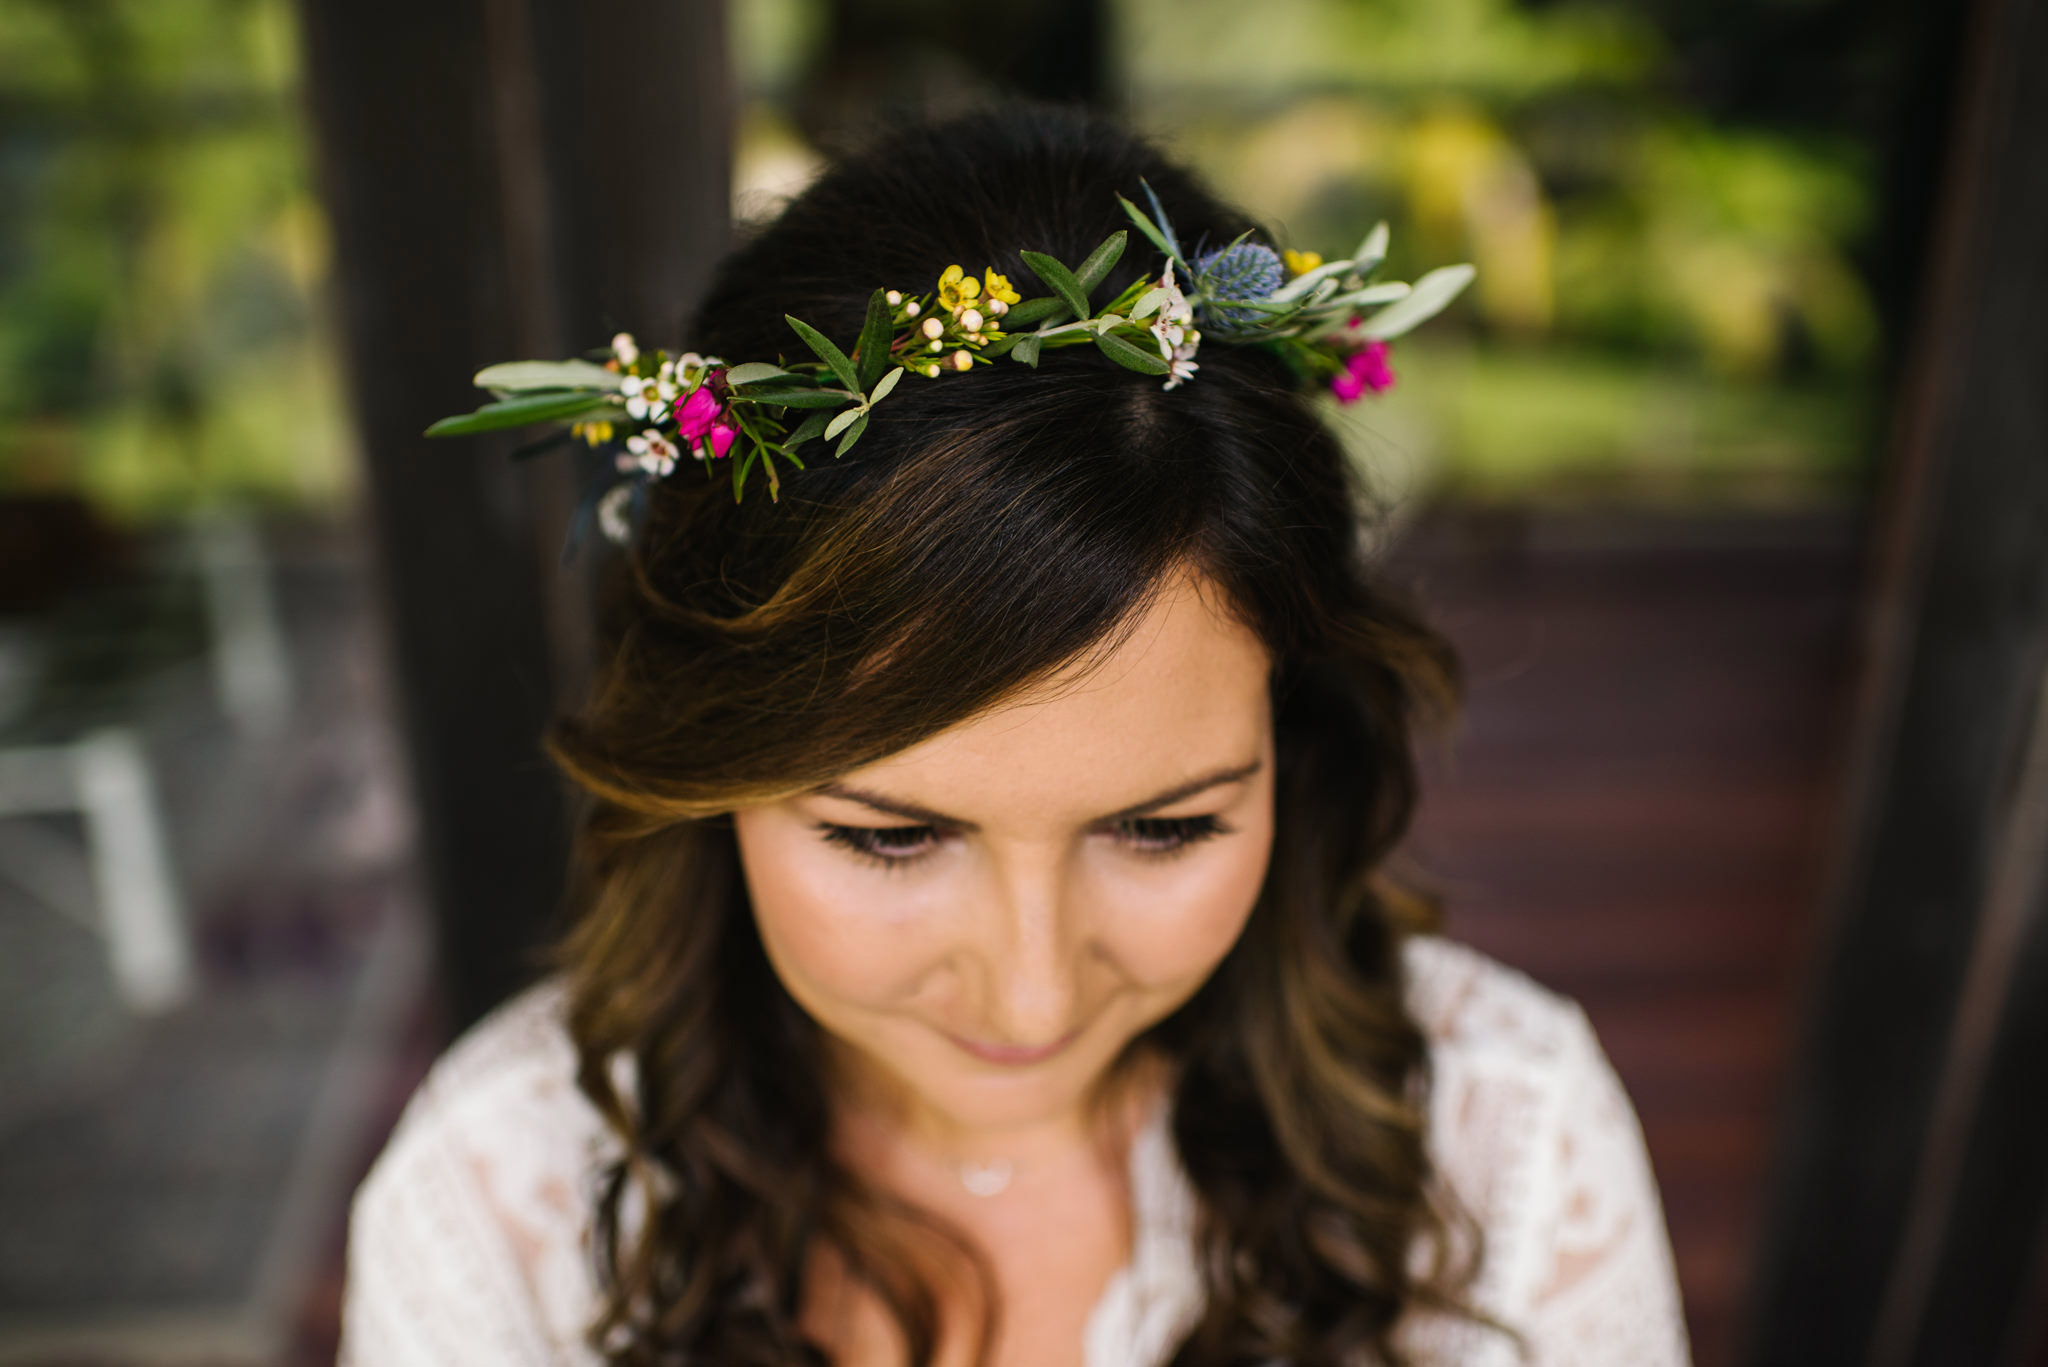 Floral wreath on bride's head